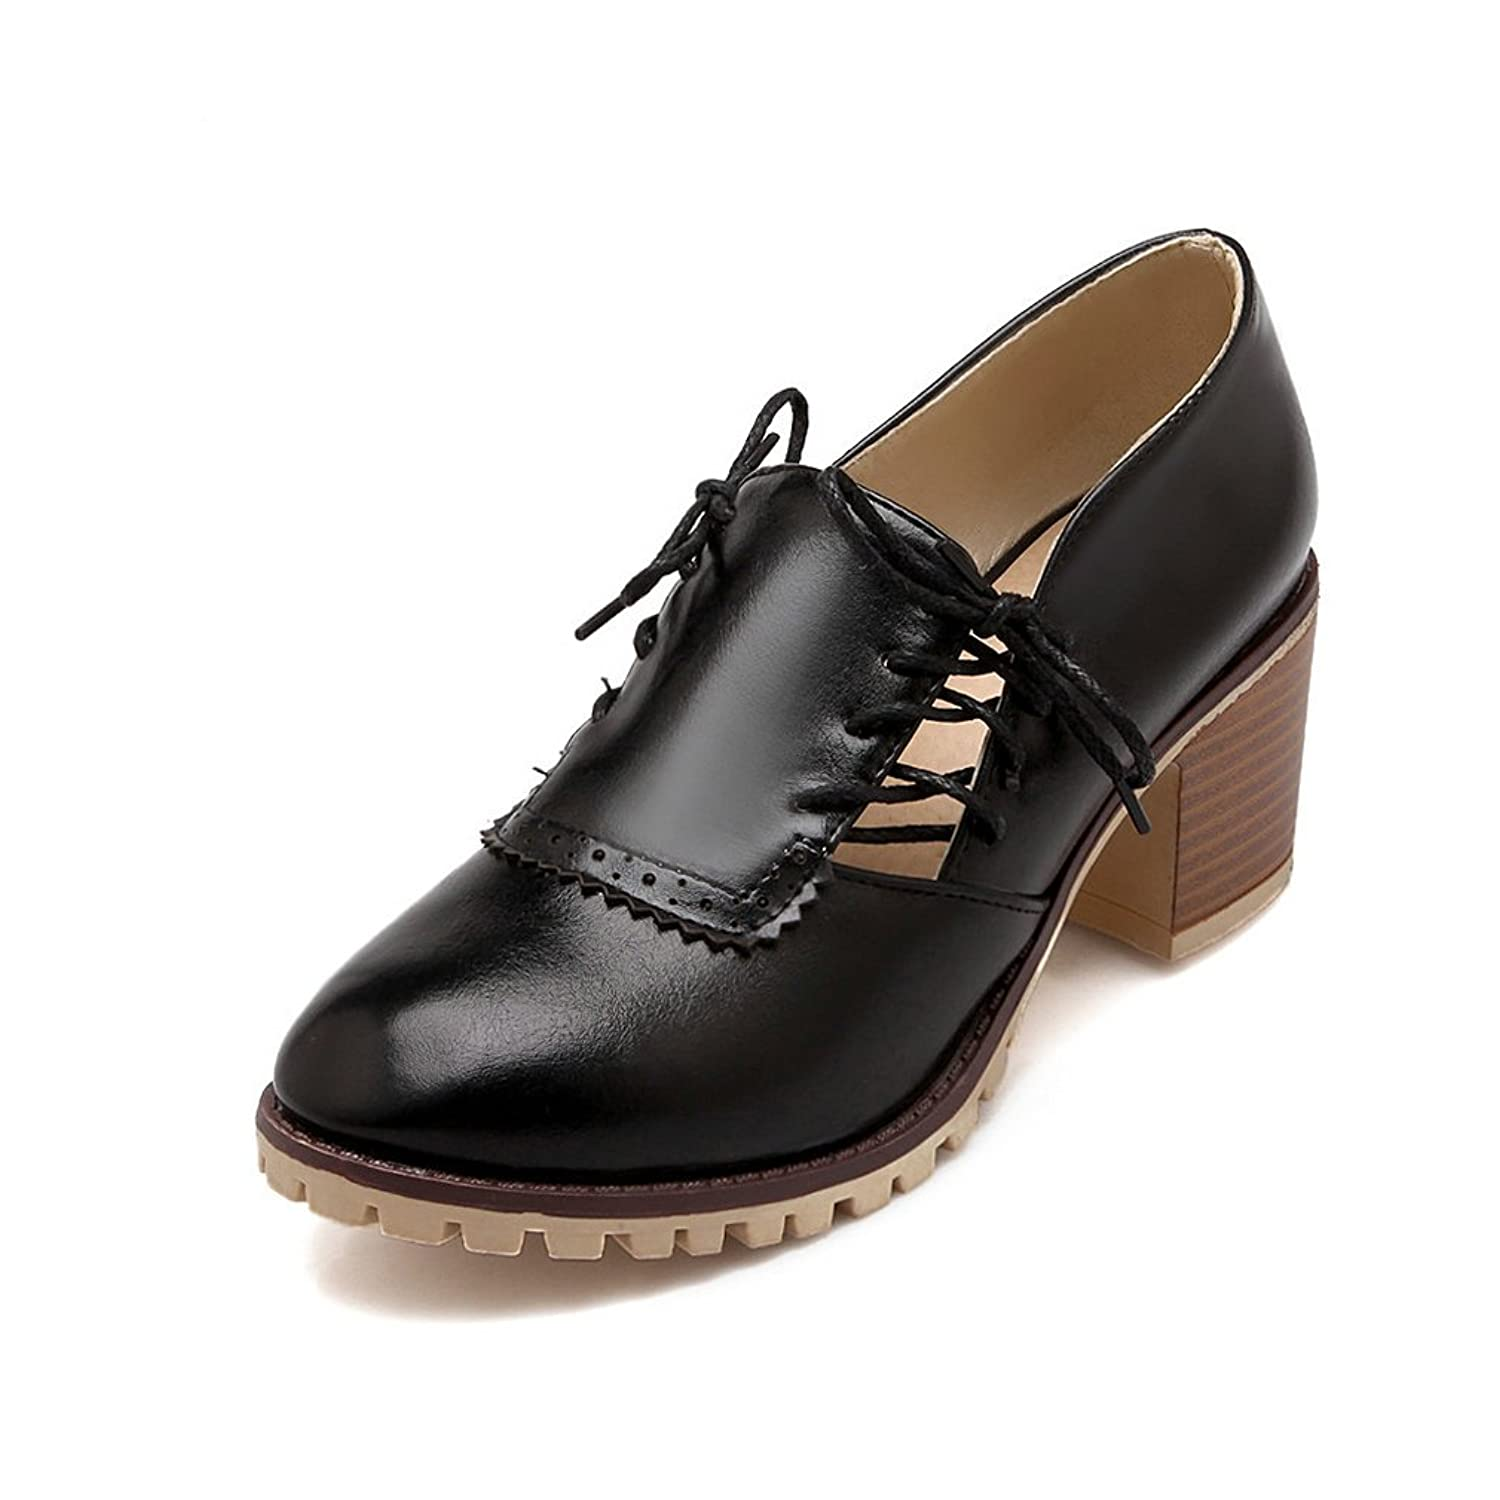 Ruisun Round Toe Lace-up Square Heel Fashion Women Oxford Shoes